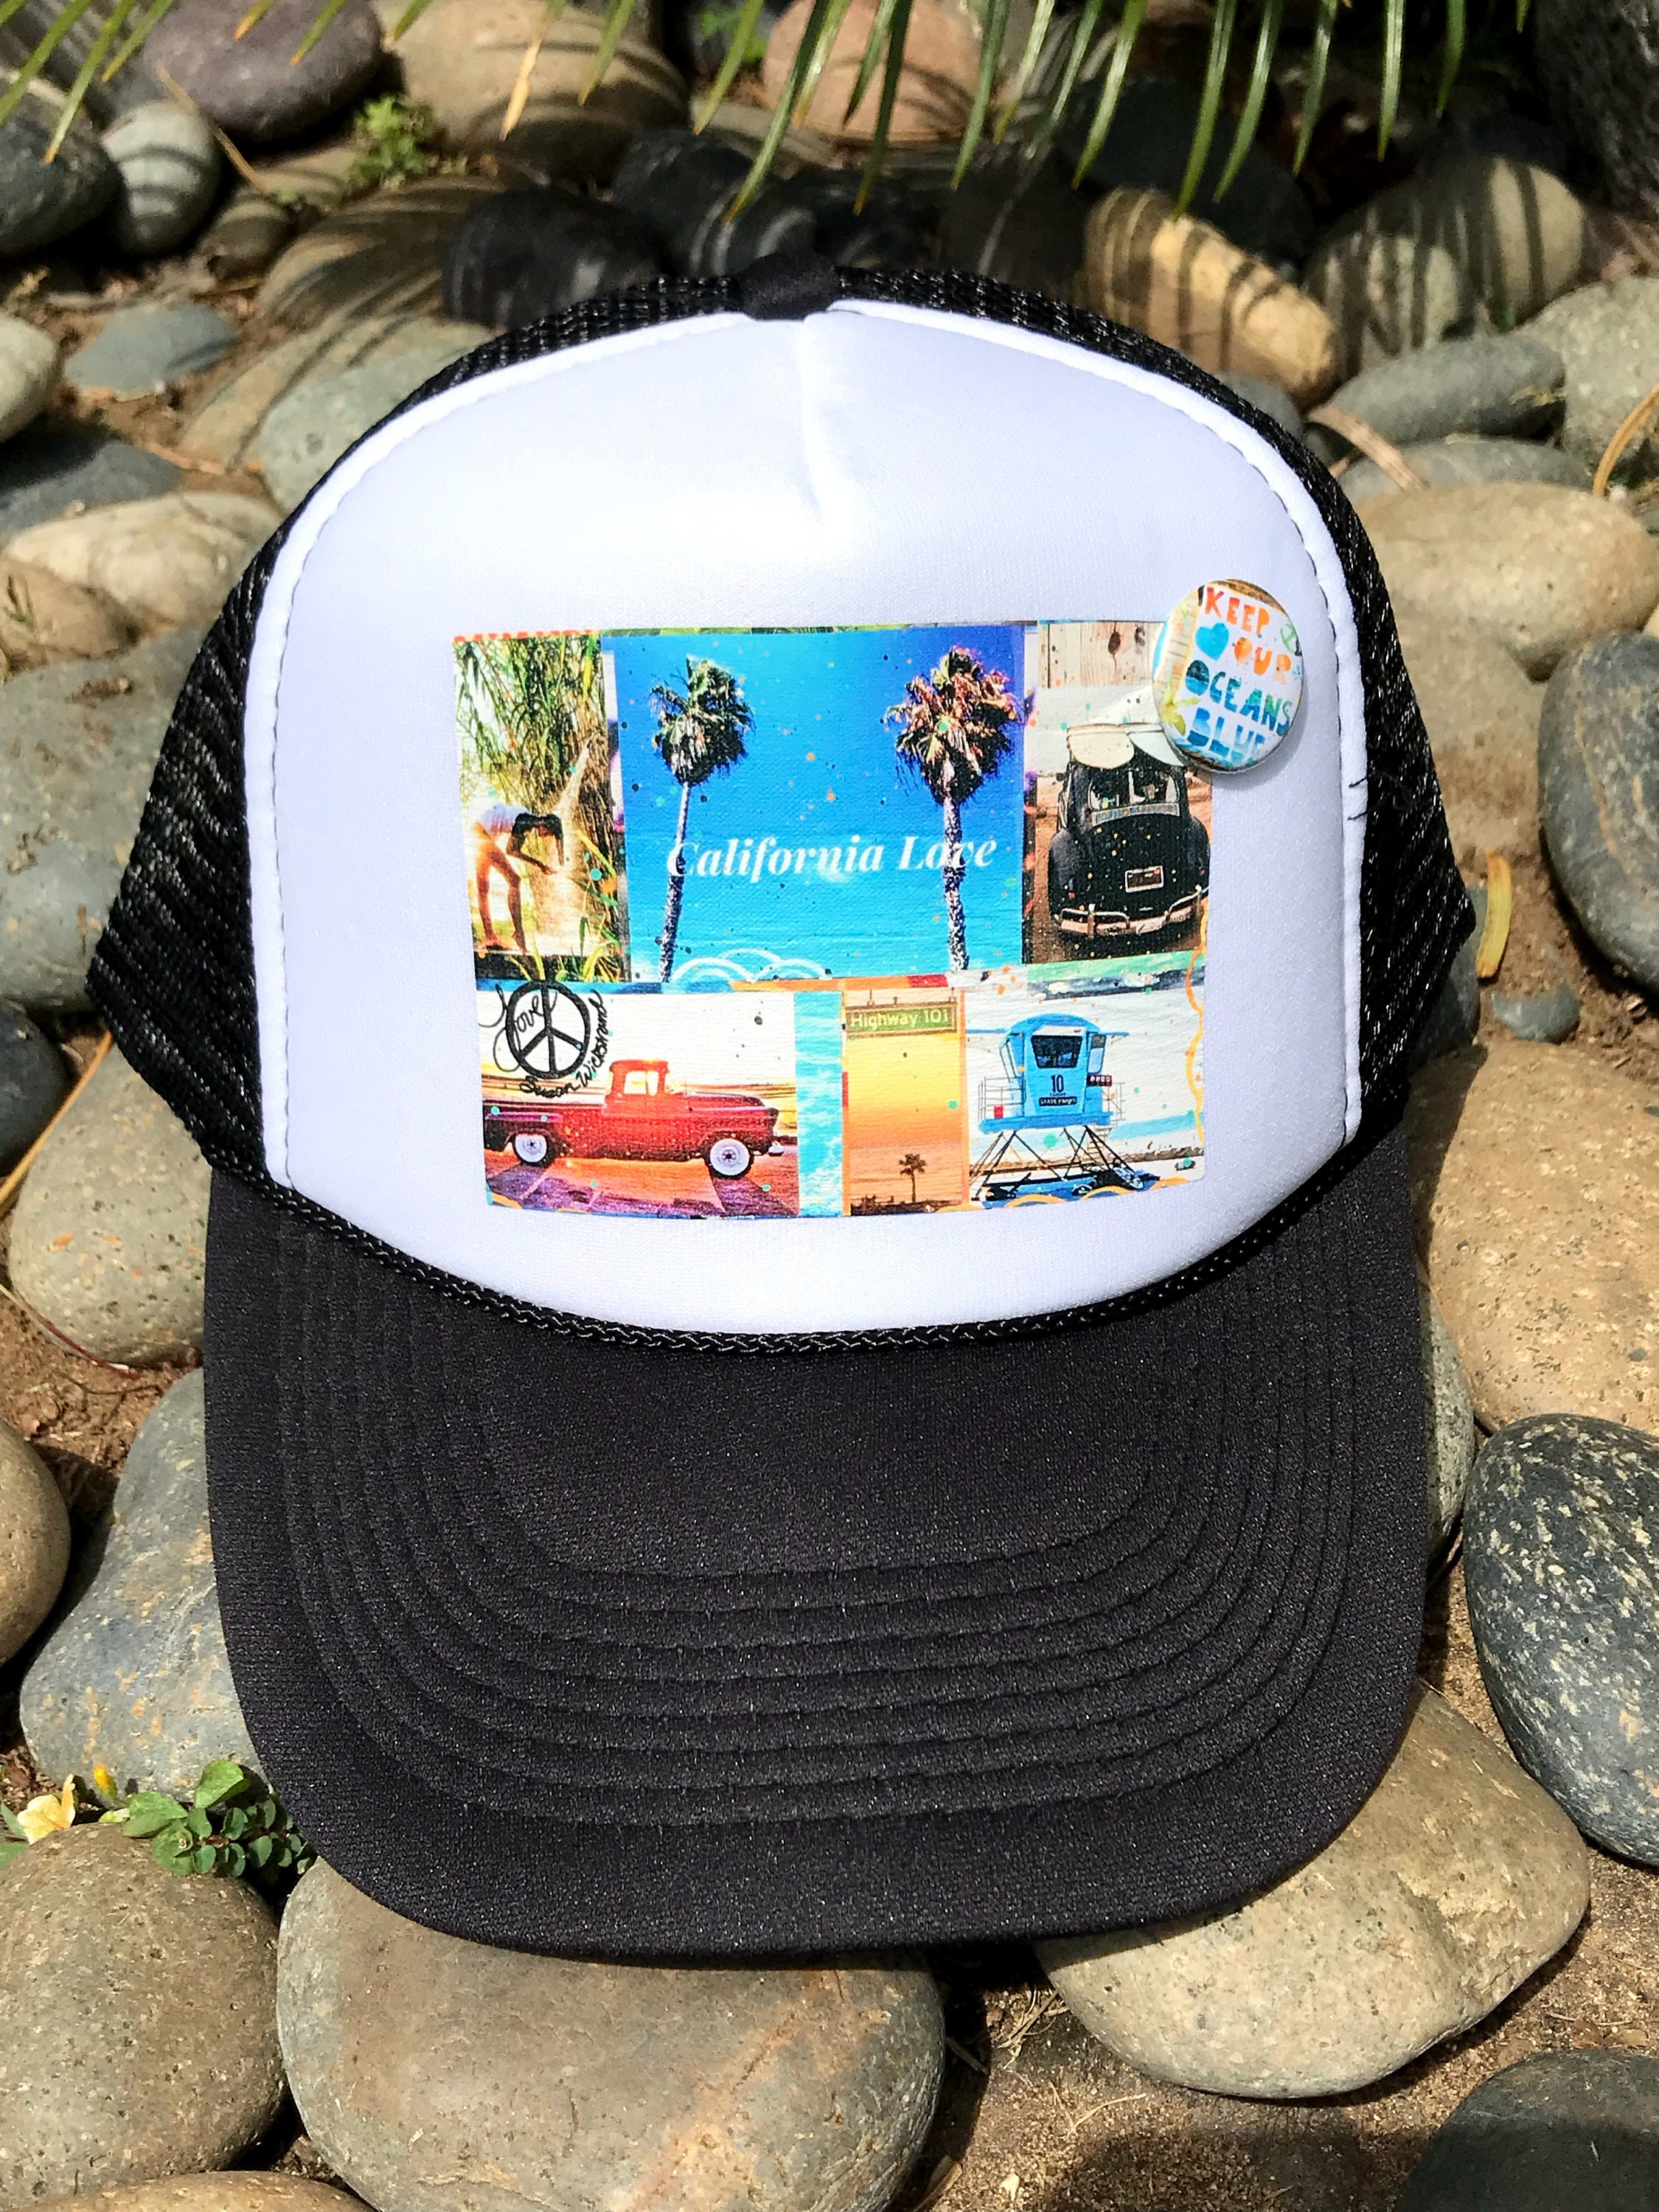 Trucker Hats, CALIFORNIA LOVE, limited ed  with custom made Pin Back  button, One Size Fits All, foam trucker hat, Beach, Surf, Ocean, truck